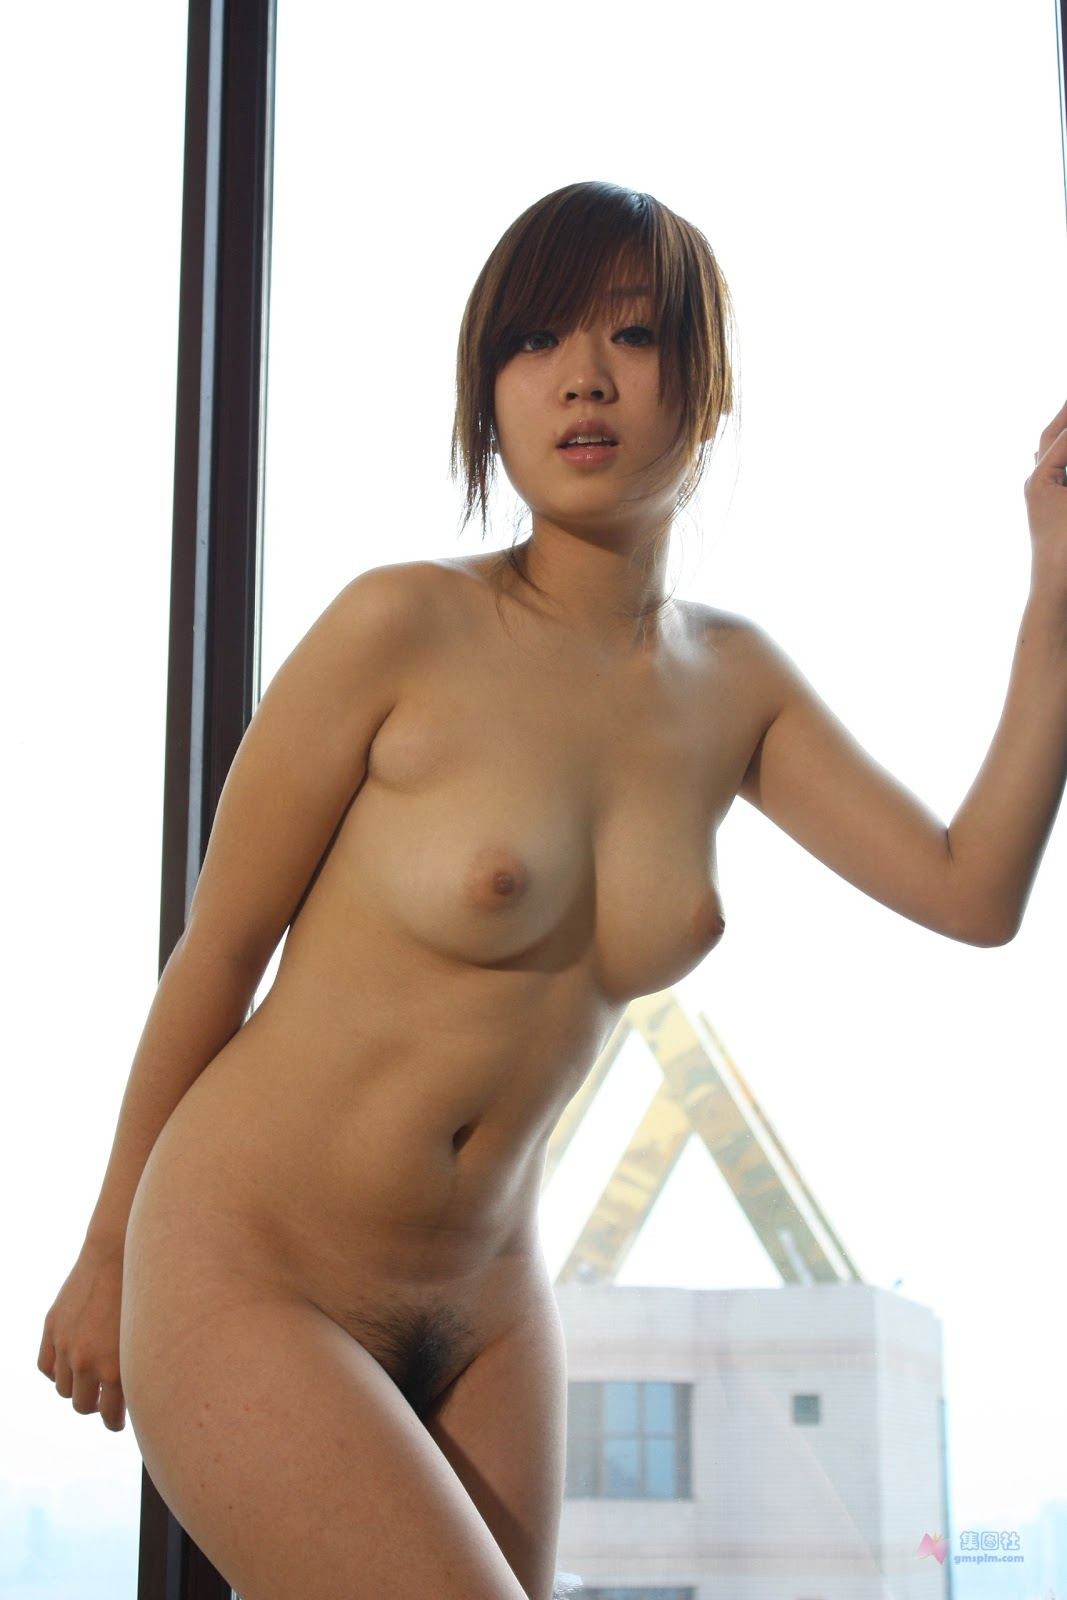 diana zubiri nudist hot gallery